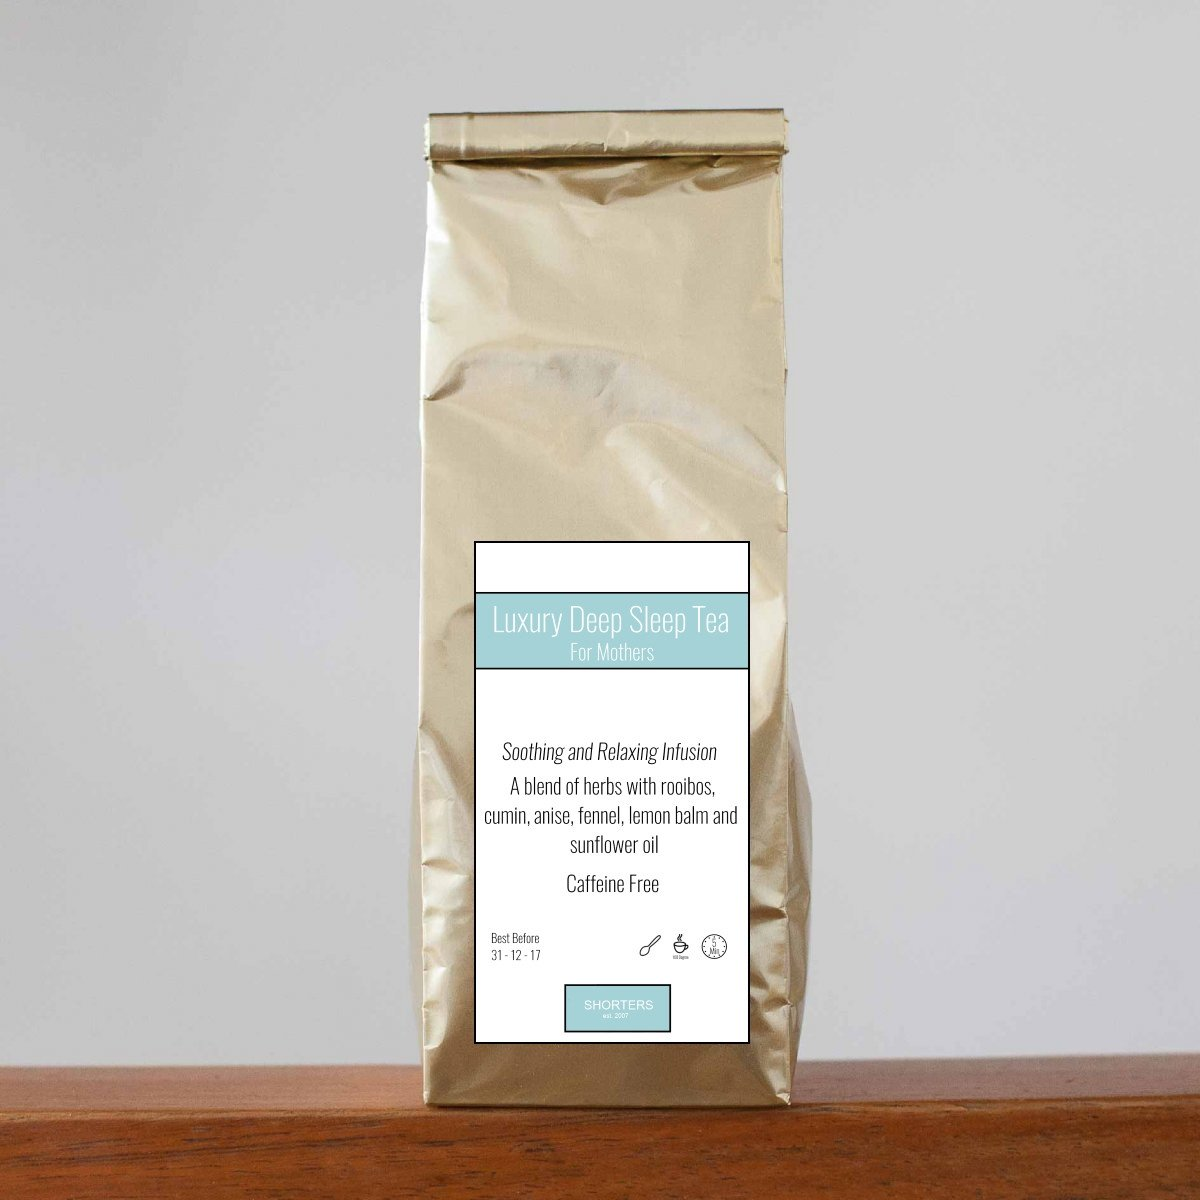 Shorters Luxury Sleep Tea 100g Complete with Stainless Tea Infuser